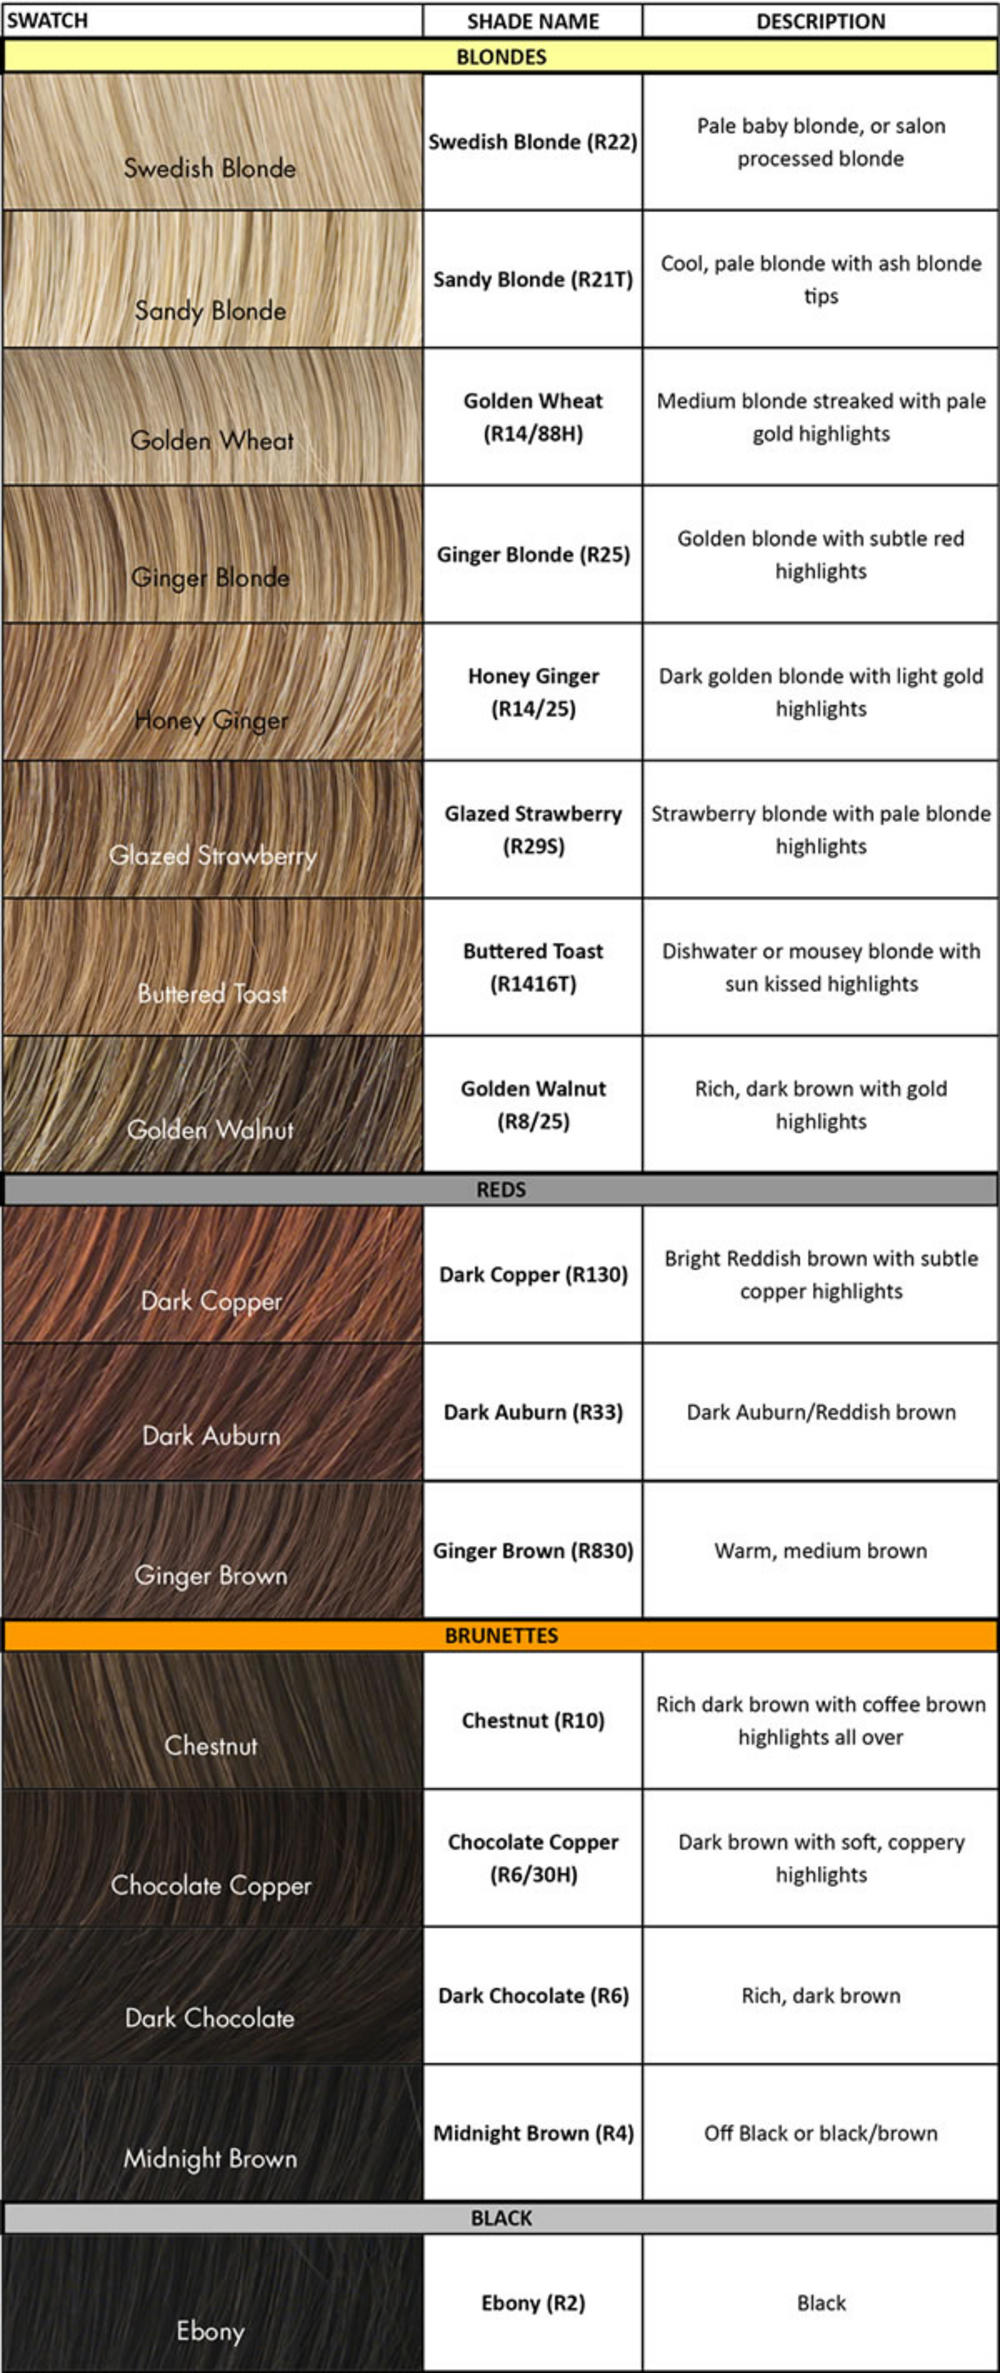 Schwarzkopf 10 minute hair color chart best hair color inspiration getting back to your natural hair color hairstyle nvjuhfo Image collections